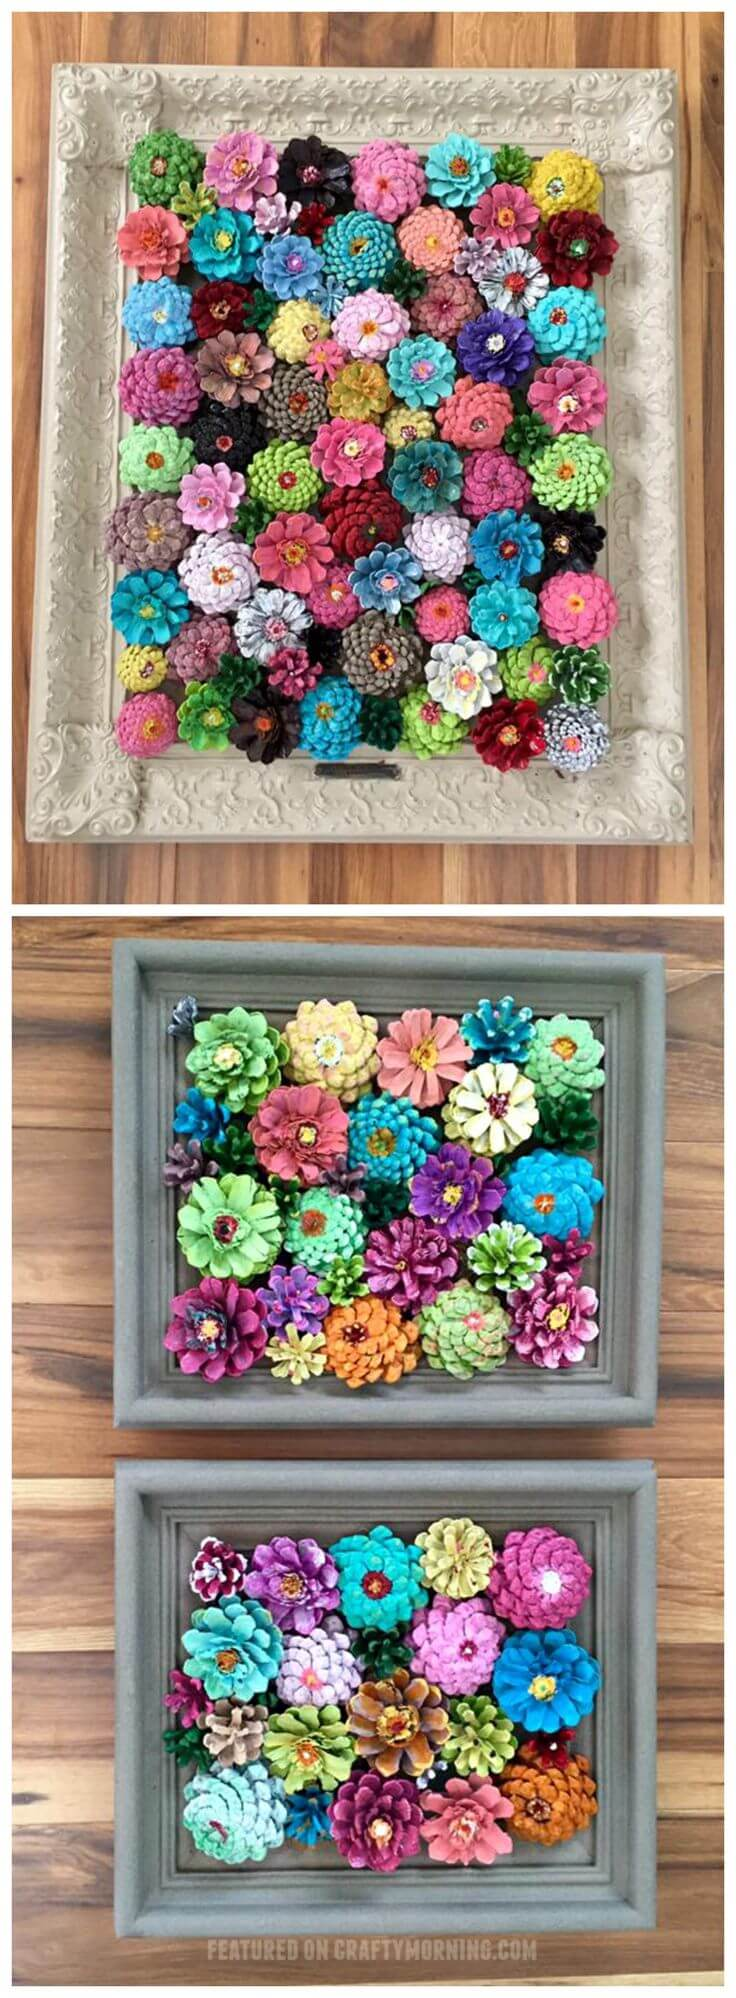 Vivid Pinecone Flowers In Rectangular Arrangement